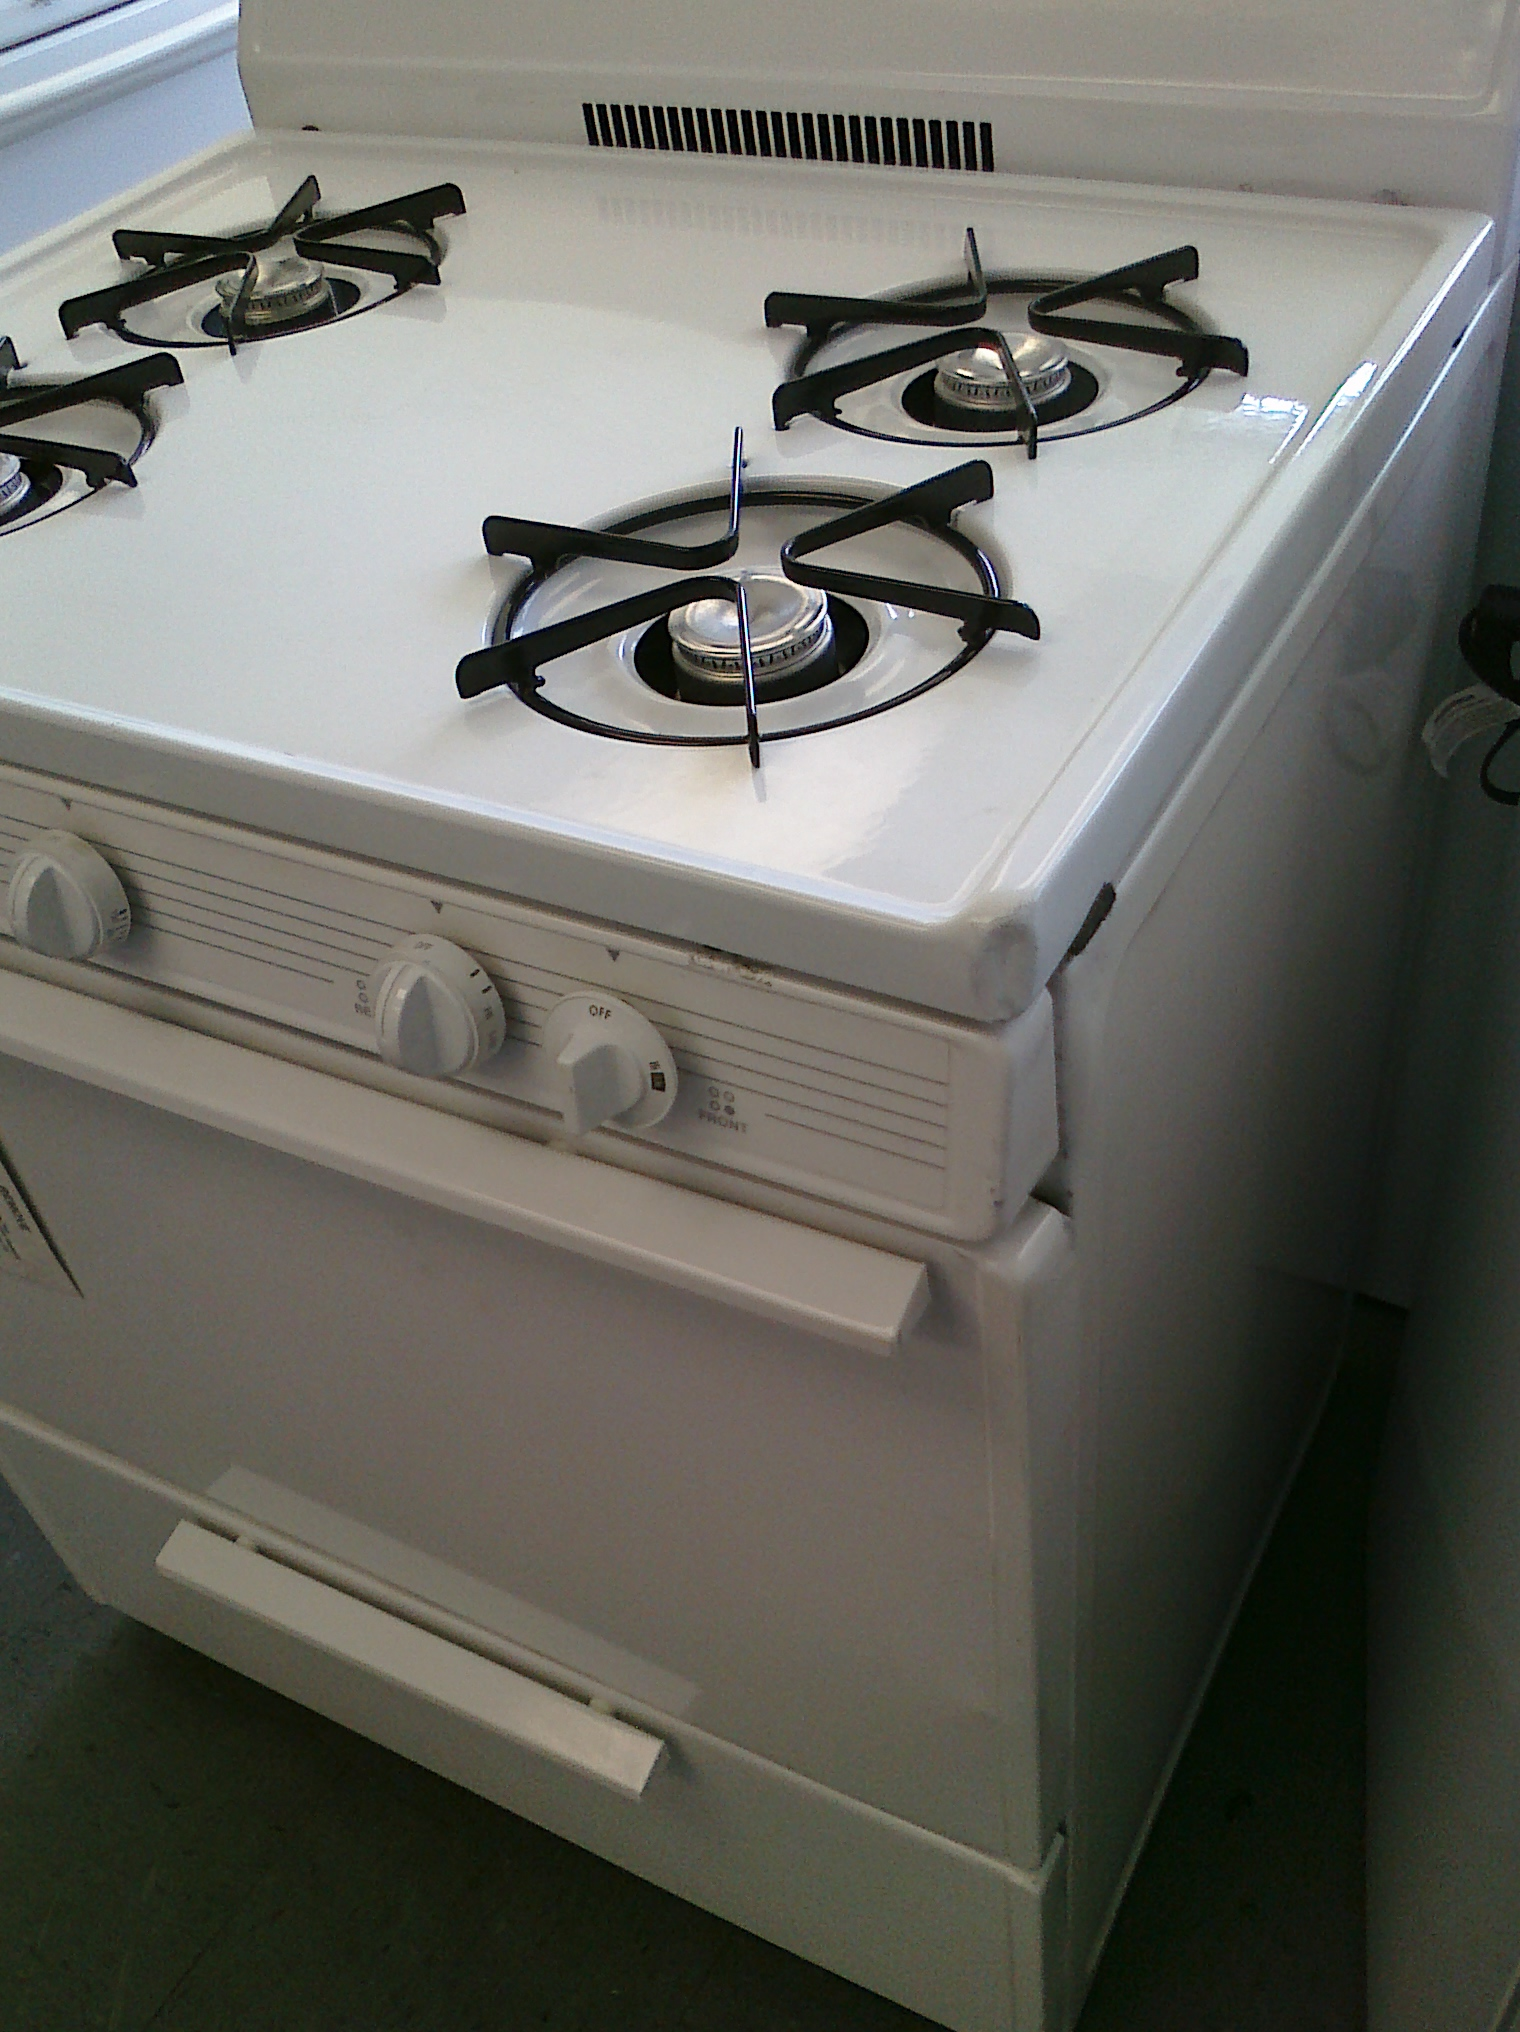 Uncategorized Premier Range Kitchen Appliances 7 premier gfk1000po1 gas range white feders outlet gfk1000po1